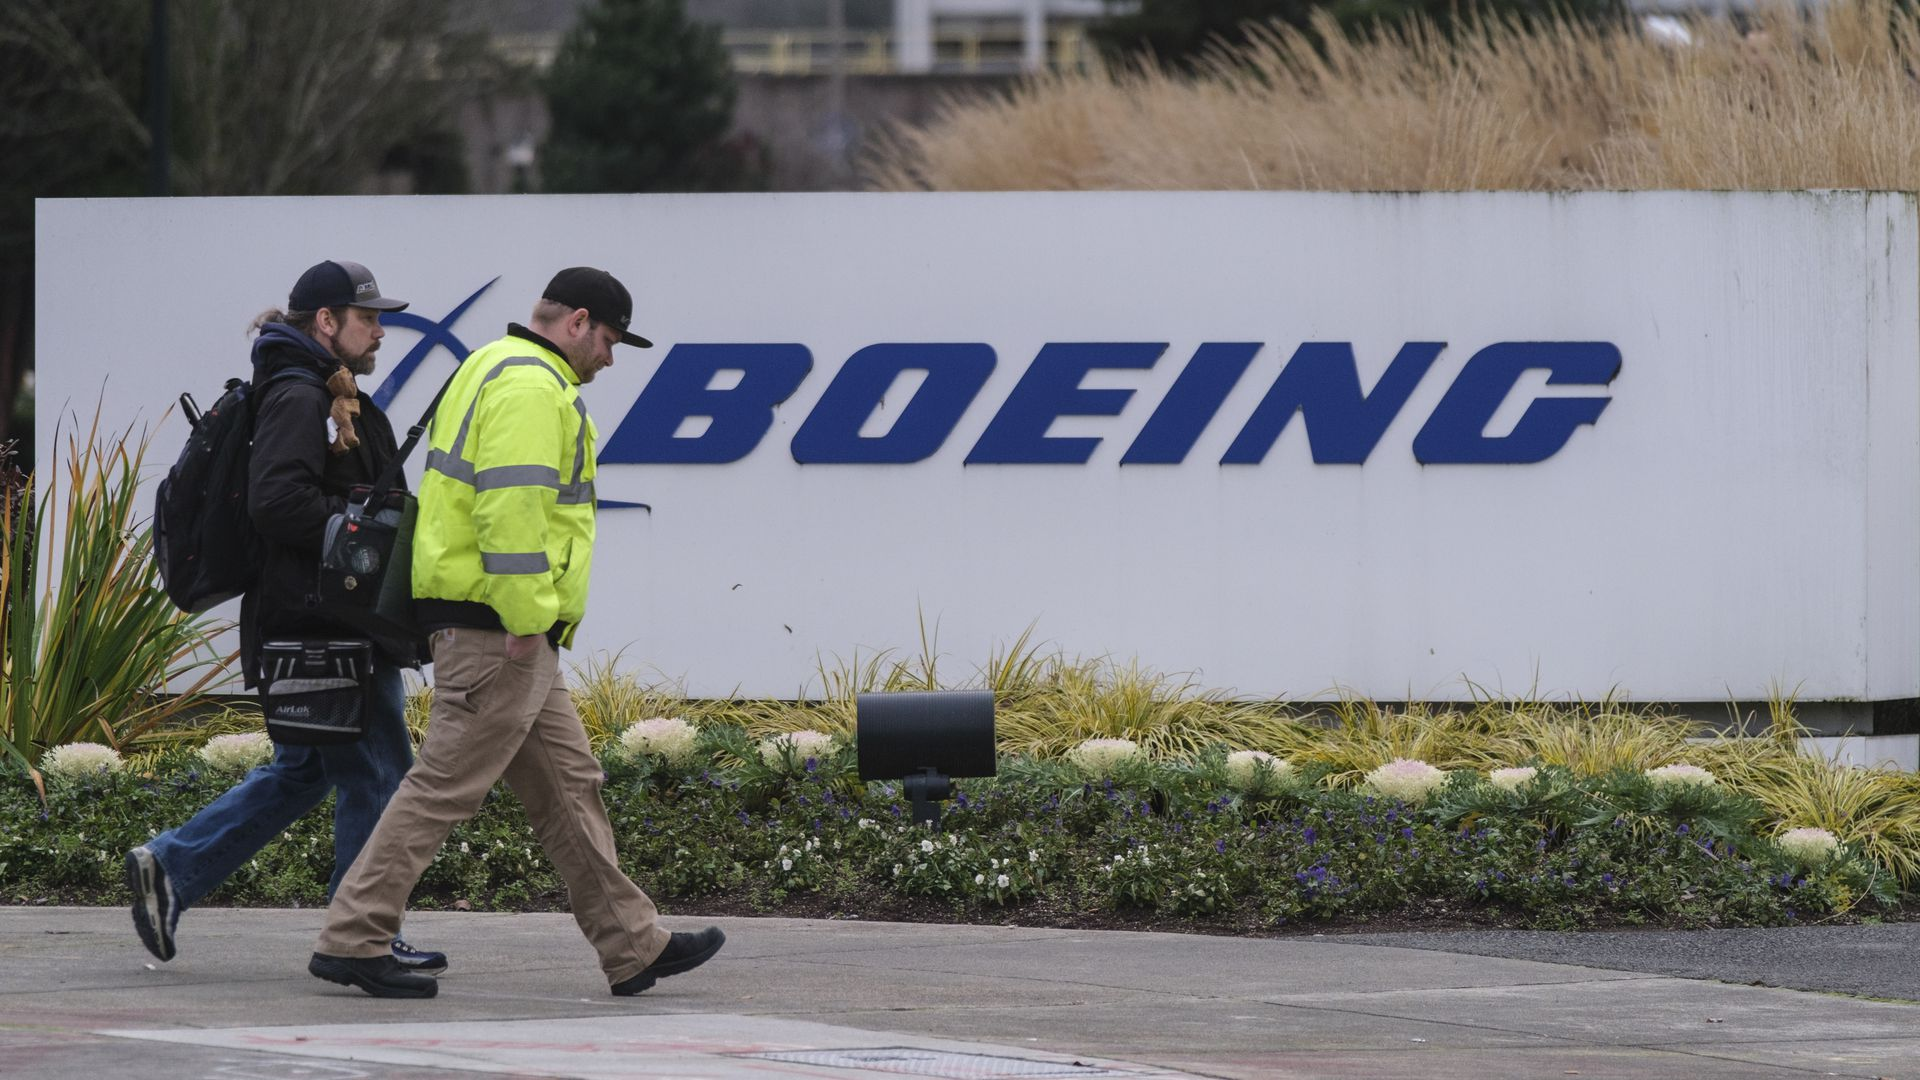 Workers walk in to the Boeing 737 factory on December 16, 2019 in Renton, Washington.